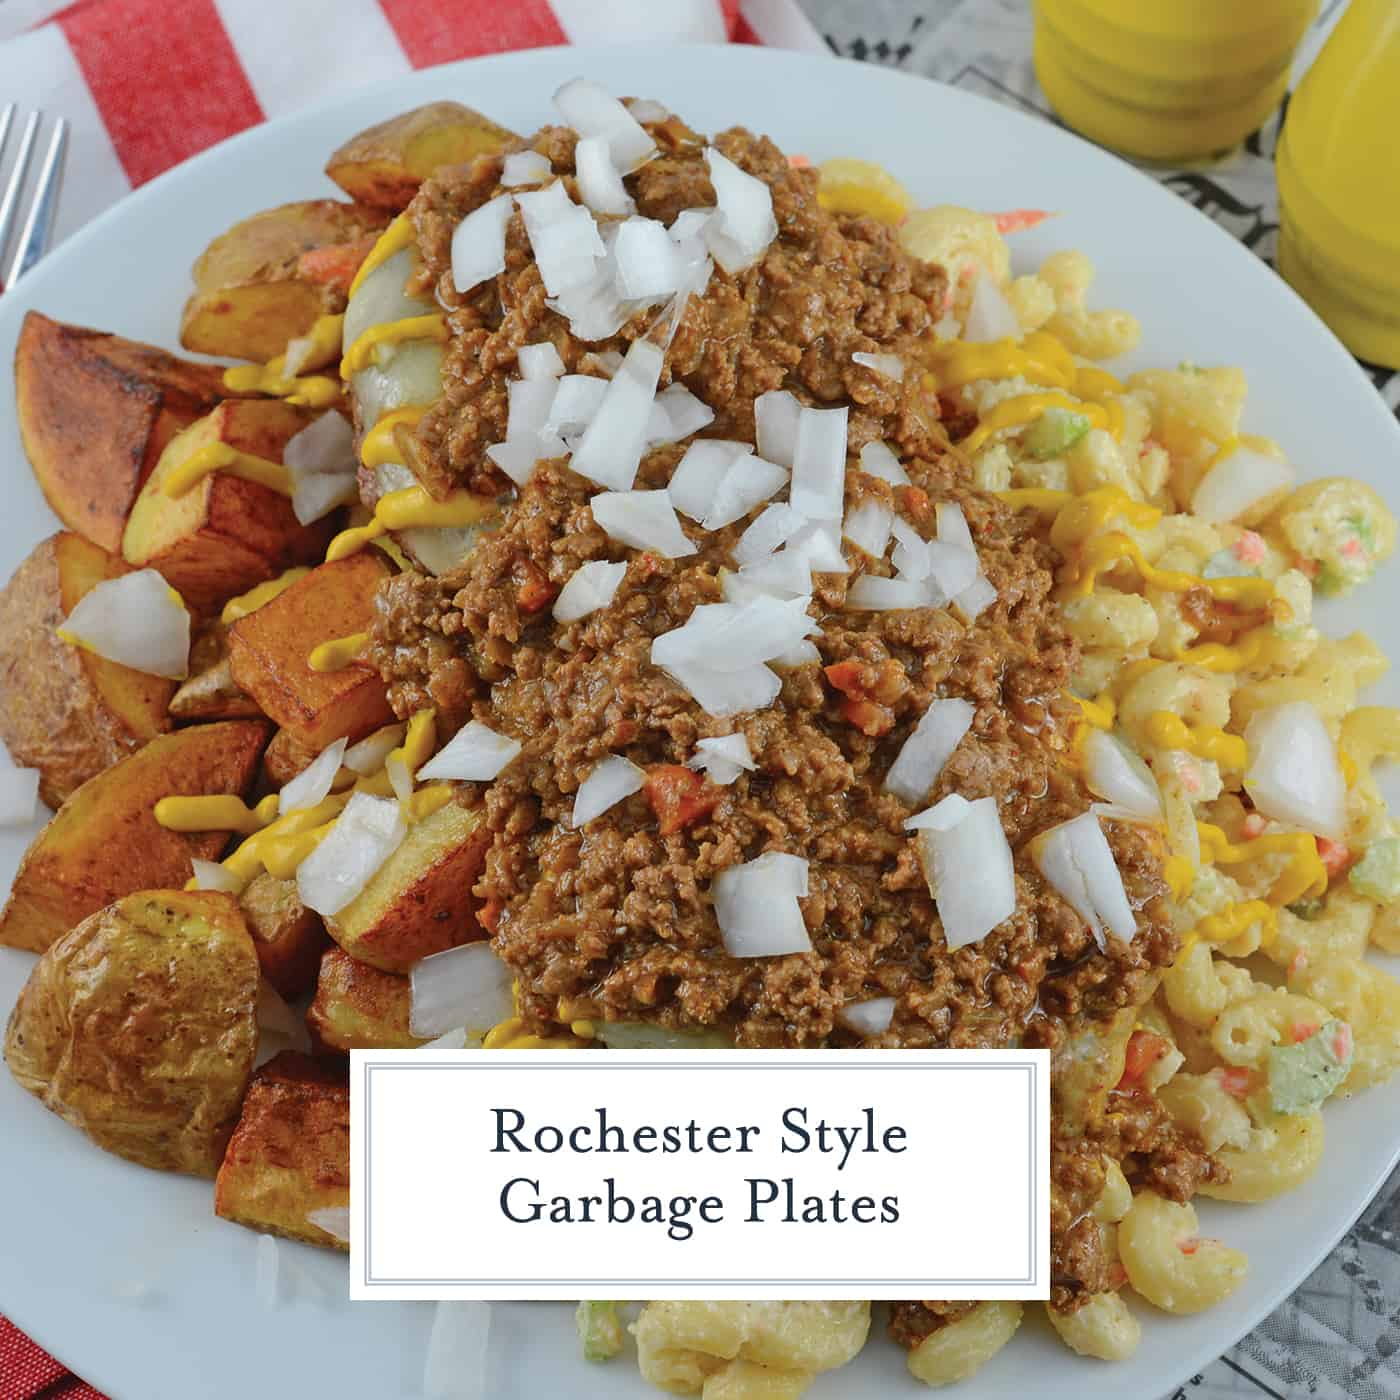 A Garbage Plate is a loaded dish of crispy home fries, hot sauce, macaroni salad and cheeseburgers topped with raw onions, condiments and slices of white bread. #garbageplates www.savoryexperiments.com